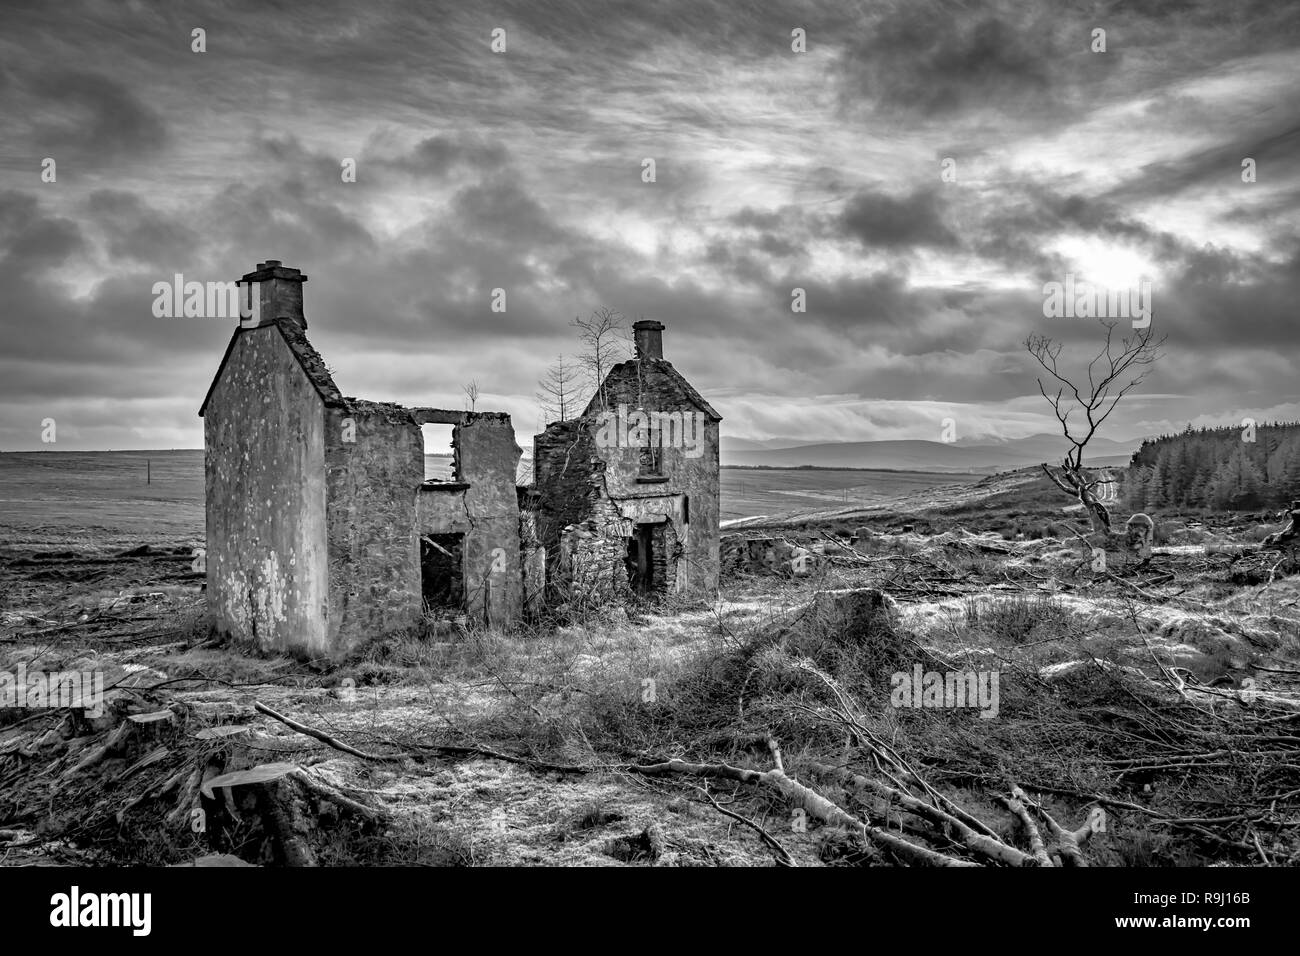 Ruins of an old Irish farm house in the Mountains of Donegal, Ireland - Stock Image